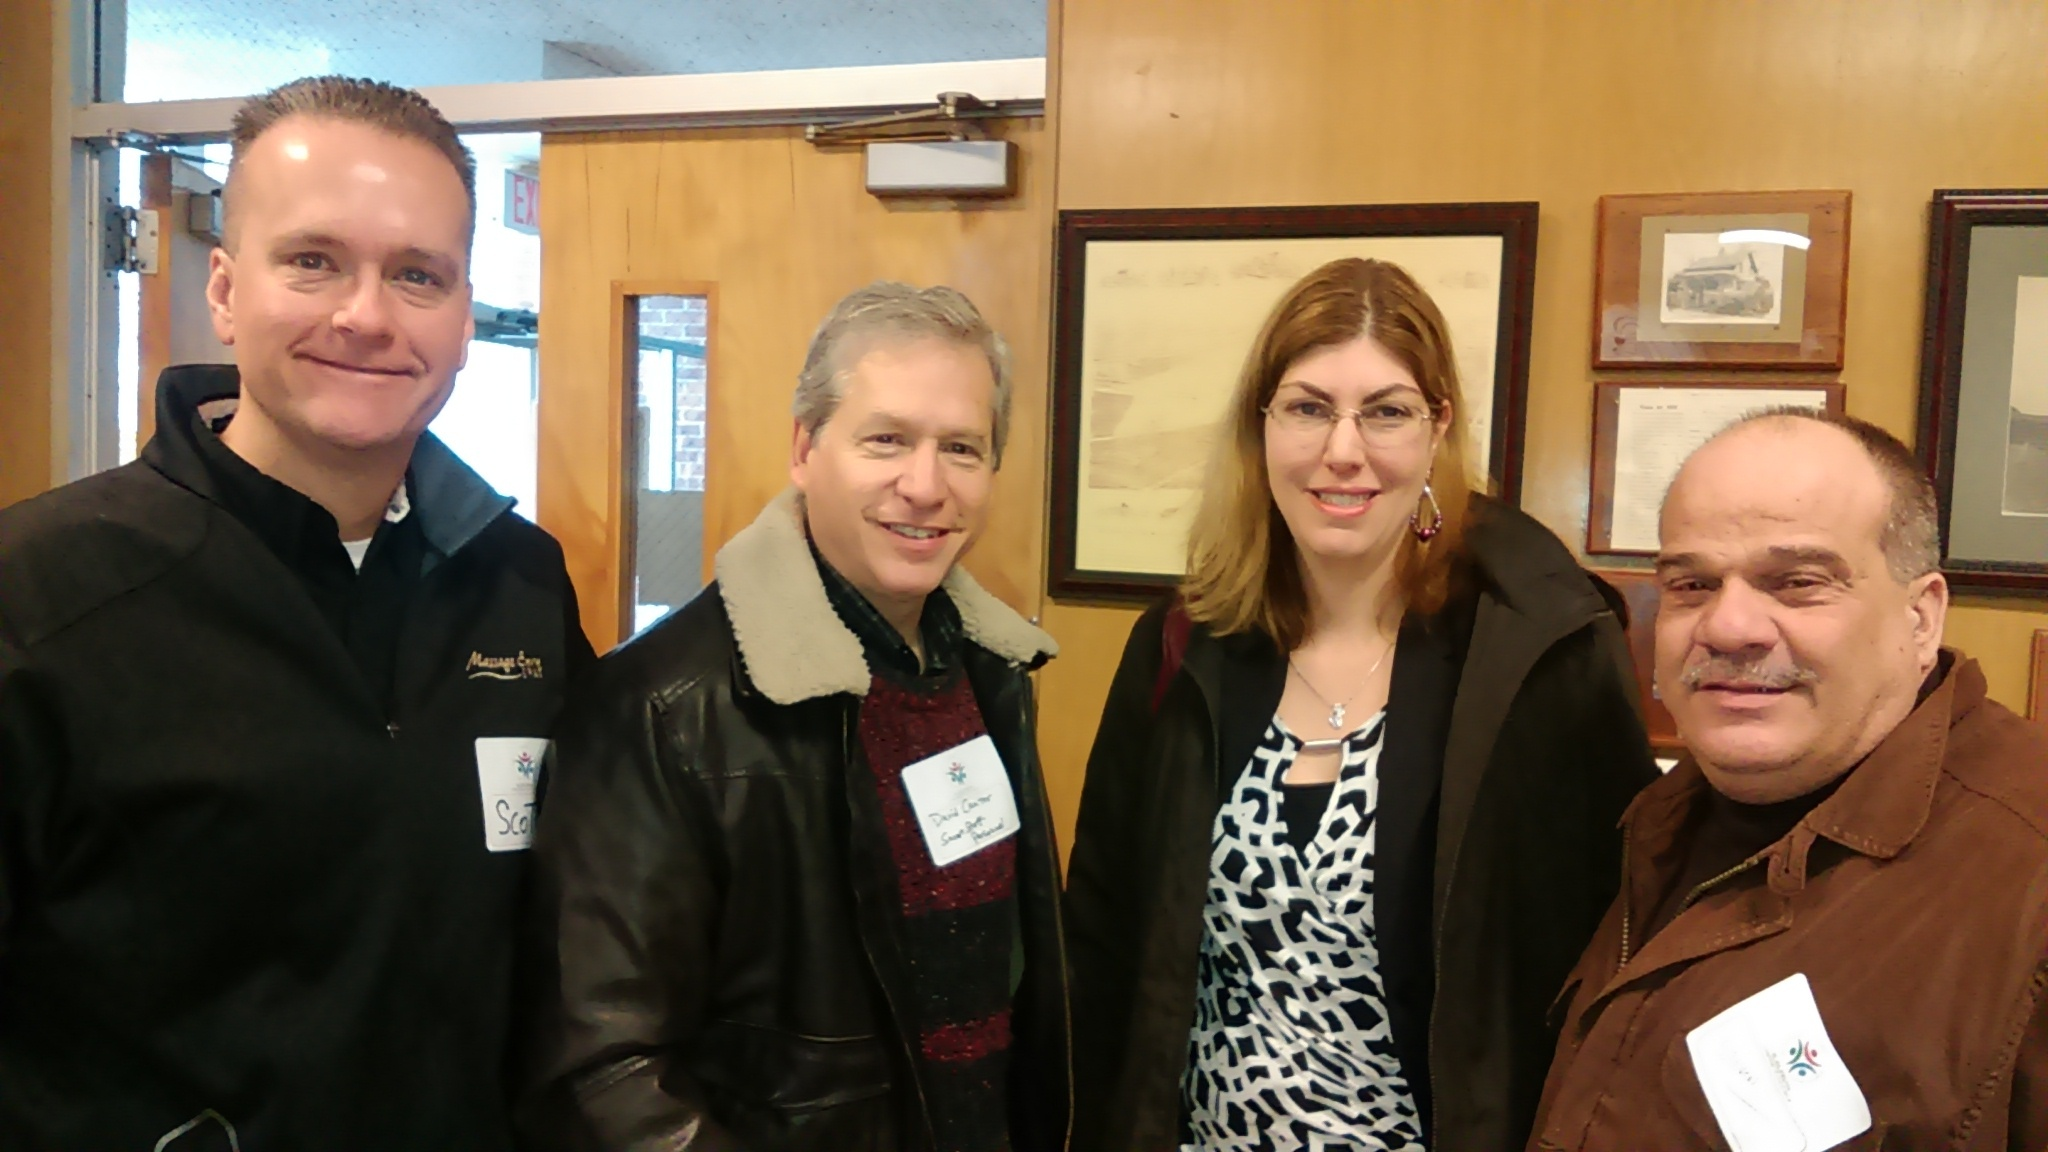 moving forward together u0027 common theme at suburban chamber of